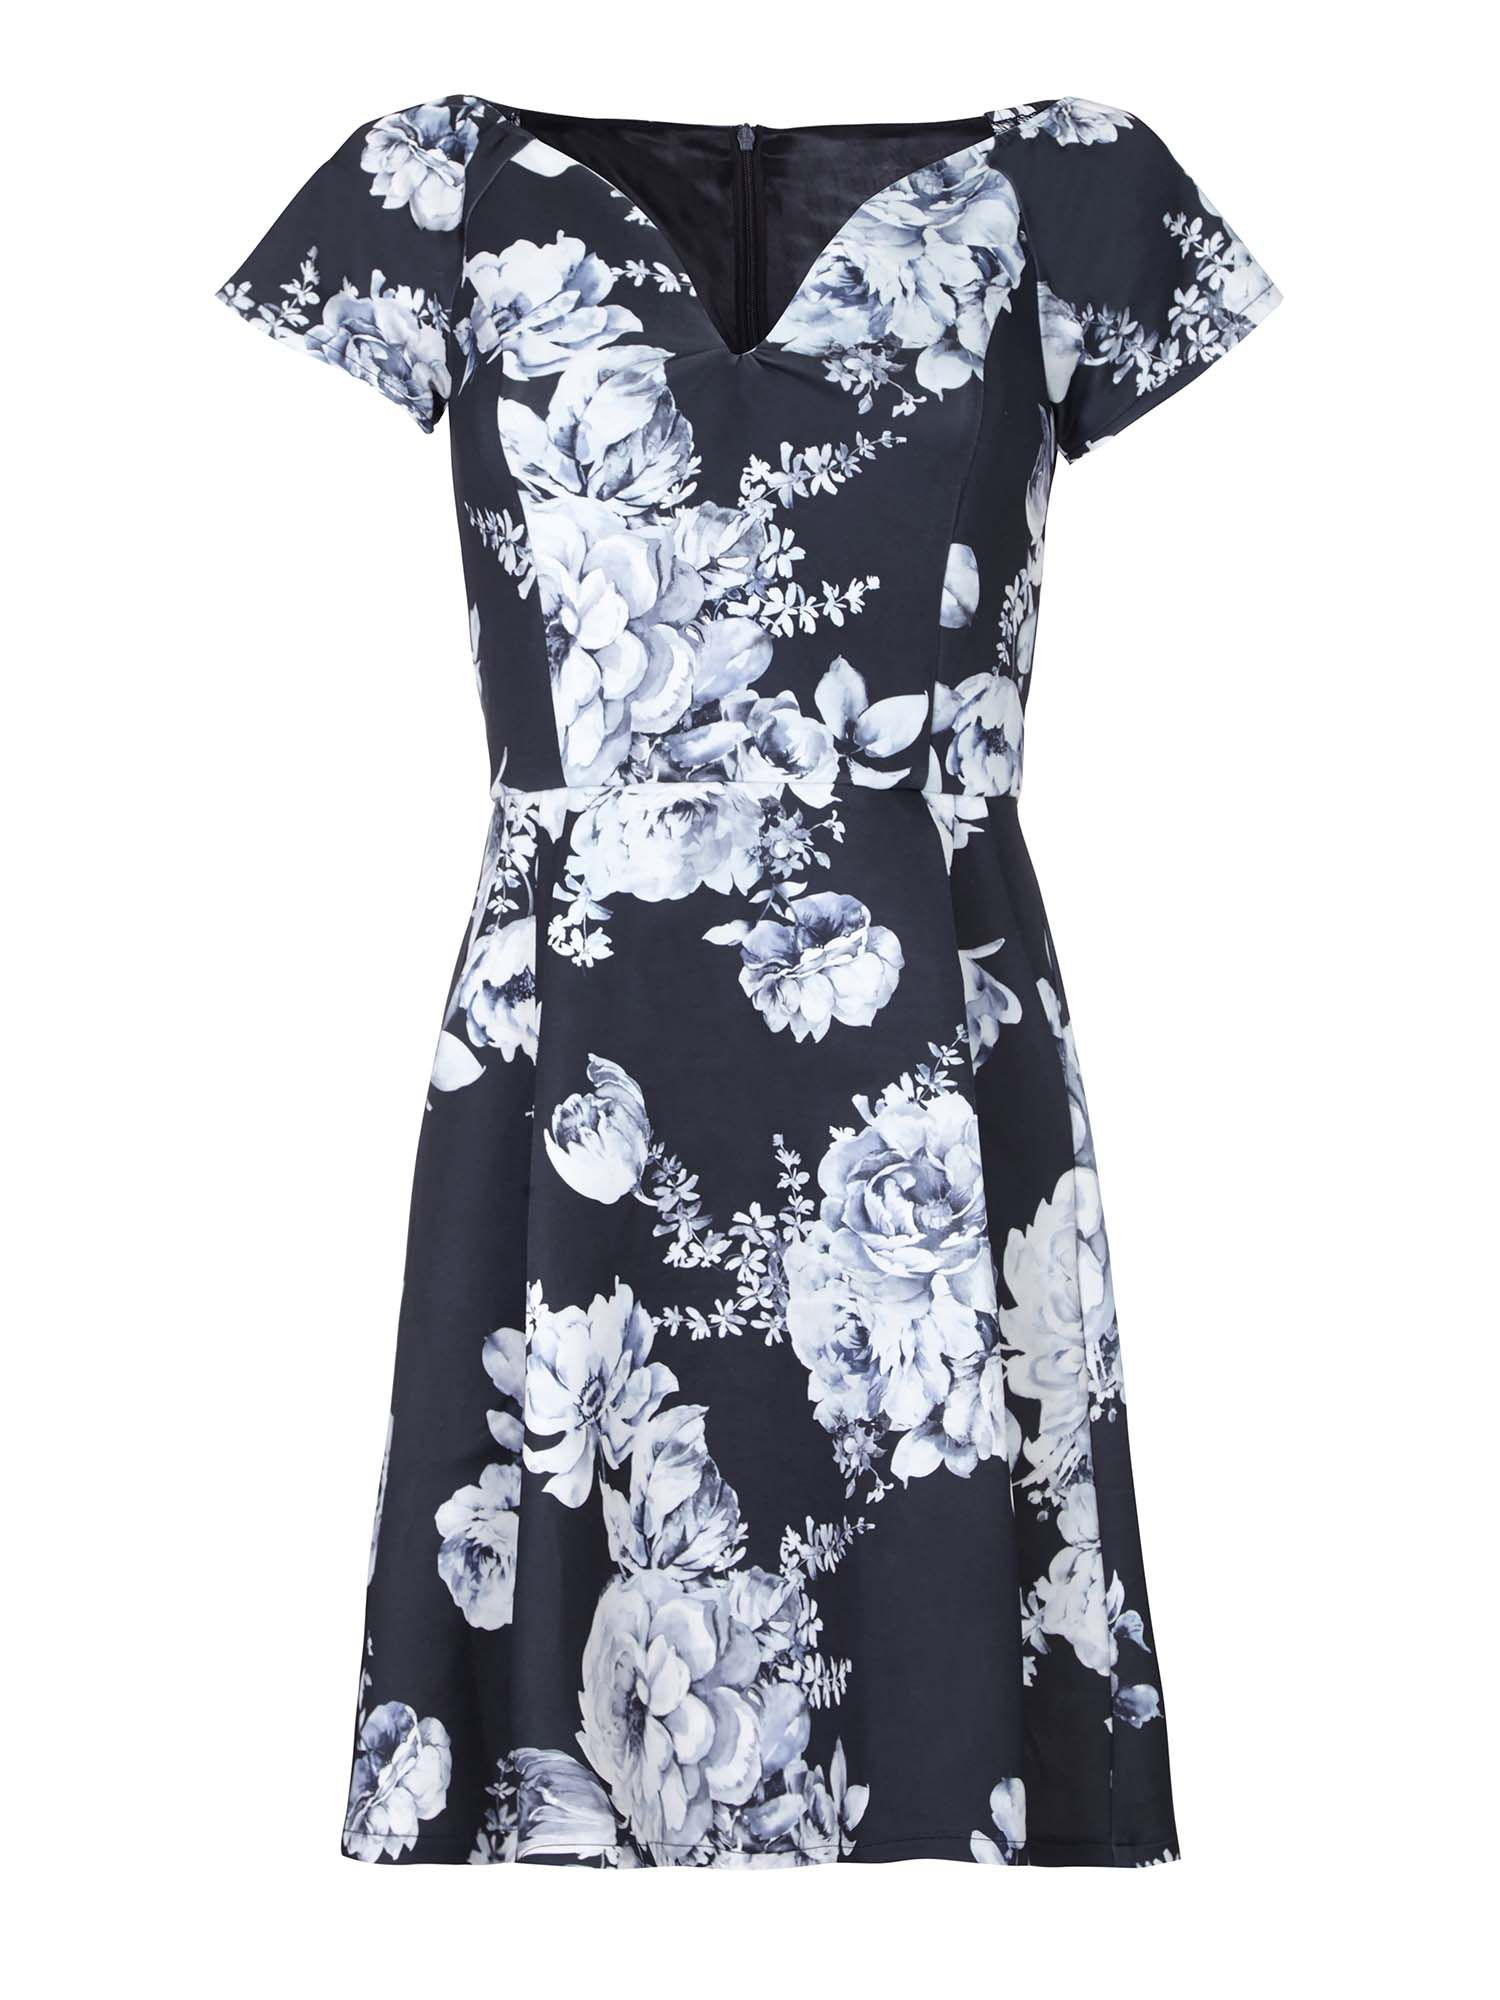 Yumi Floral Print Bardot Party Dress, Black